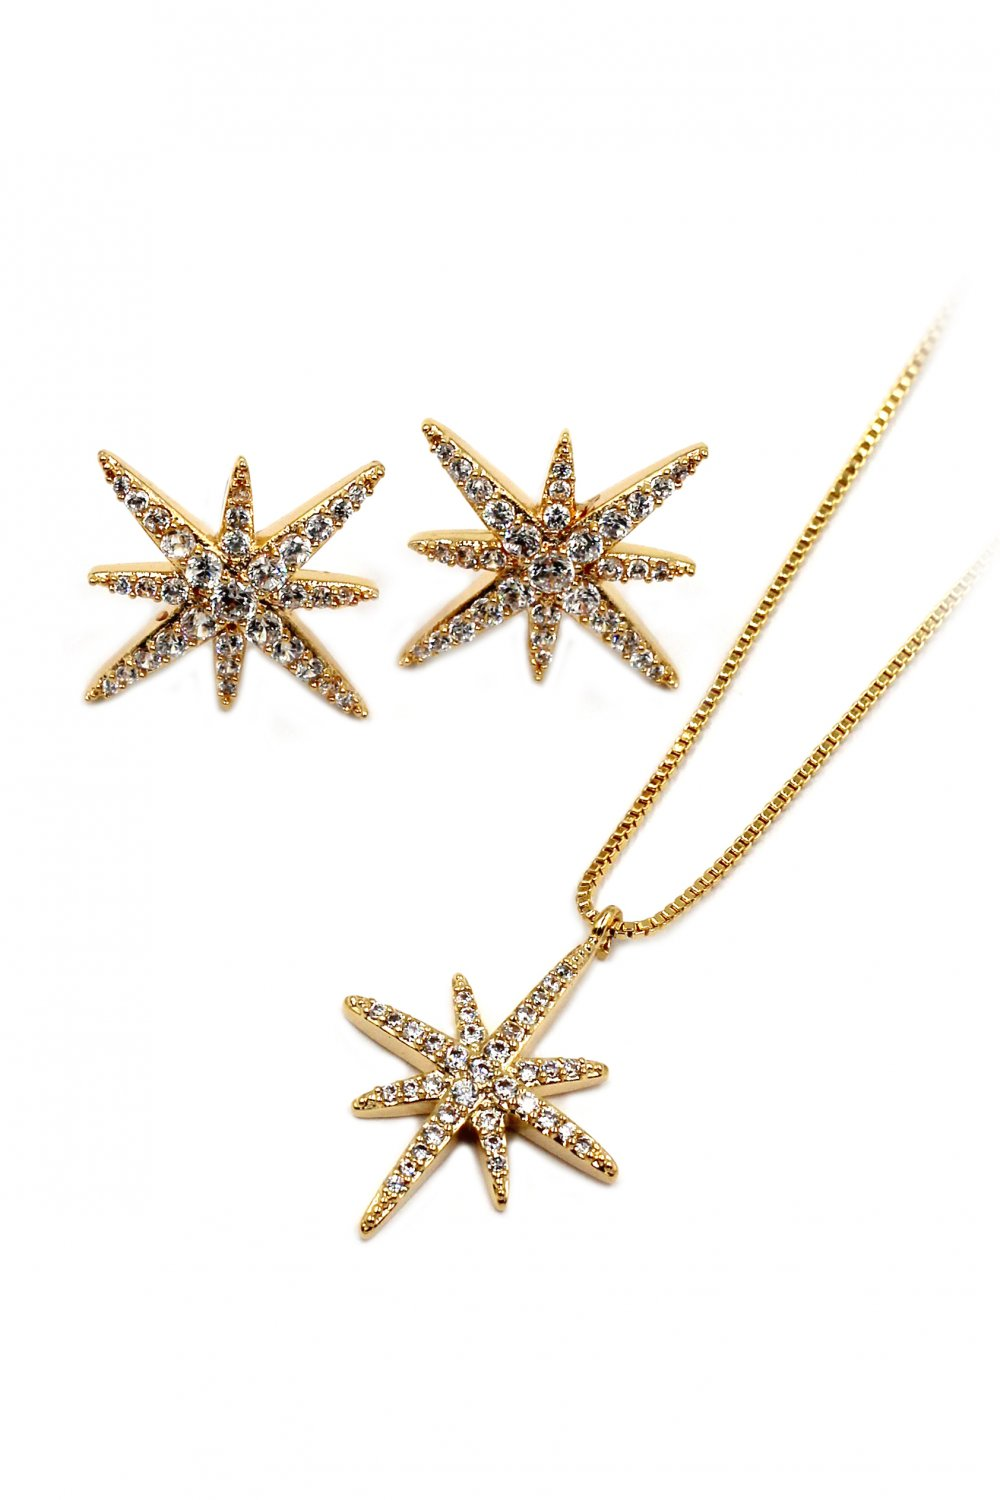 Fashion polaris small crystal Sterling silver chain necklace earrings gold set